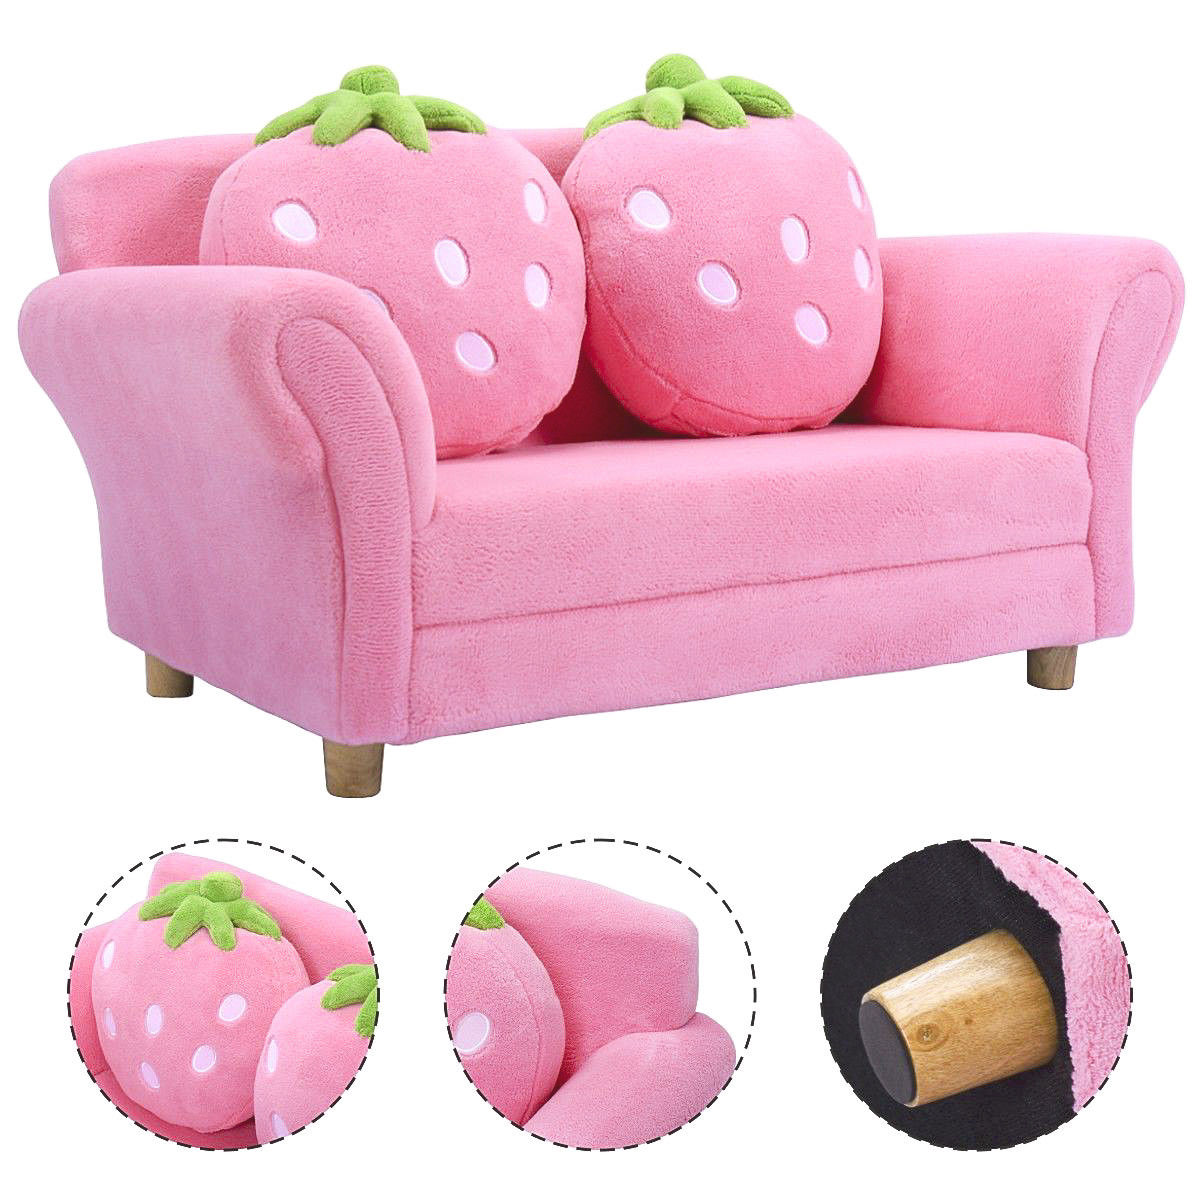 Costway Kids Sofa Strawberry Armrest Chair Lounge Couch w/2 Pillow